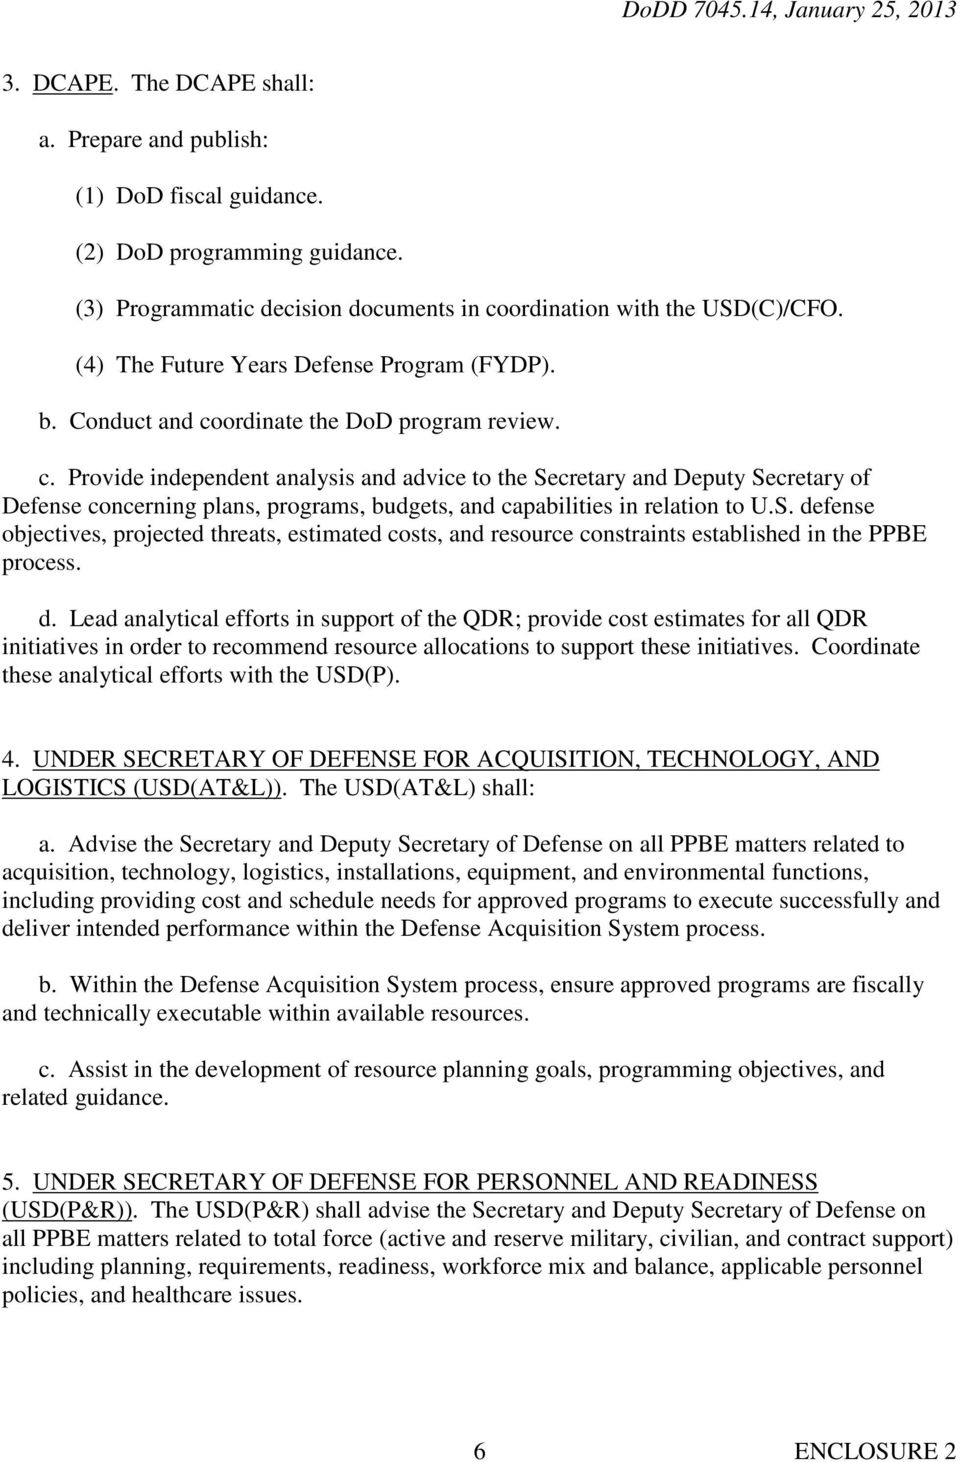 ordinate the DoD program review. c. Provide independent analysis and advice to the Secretary and Deputy Secretary of Defense concerning plans, programs, budgets, and capabilities in relation to U.S. defense objectives, projected threats, estimated costs, and resource constraints established in the PPBE process.